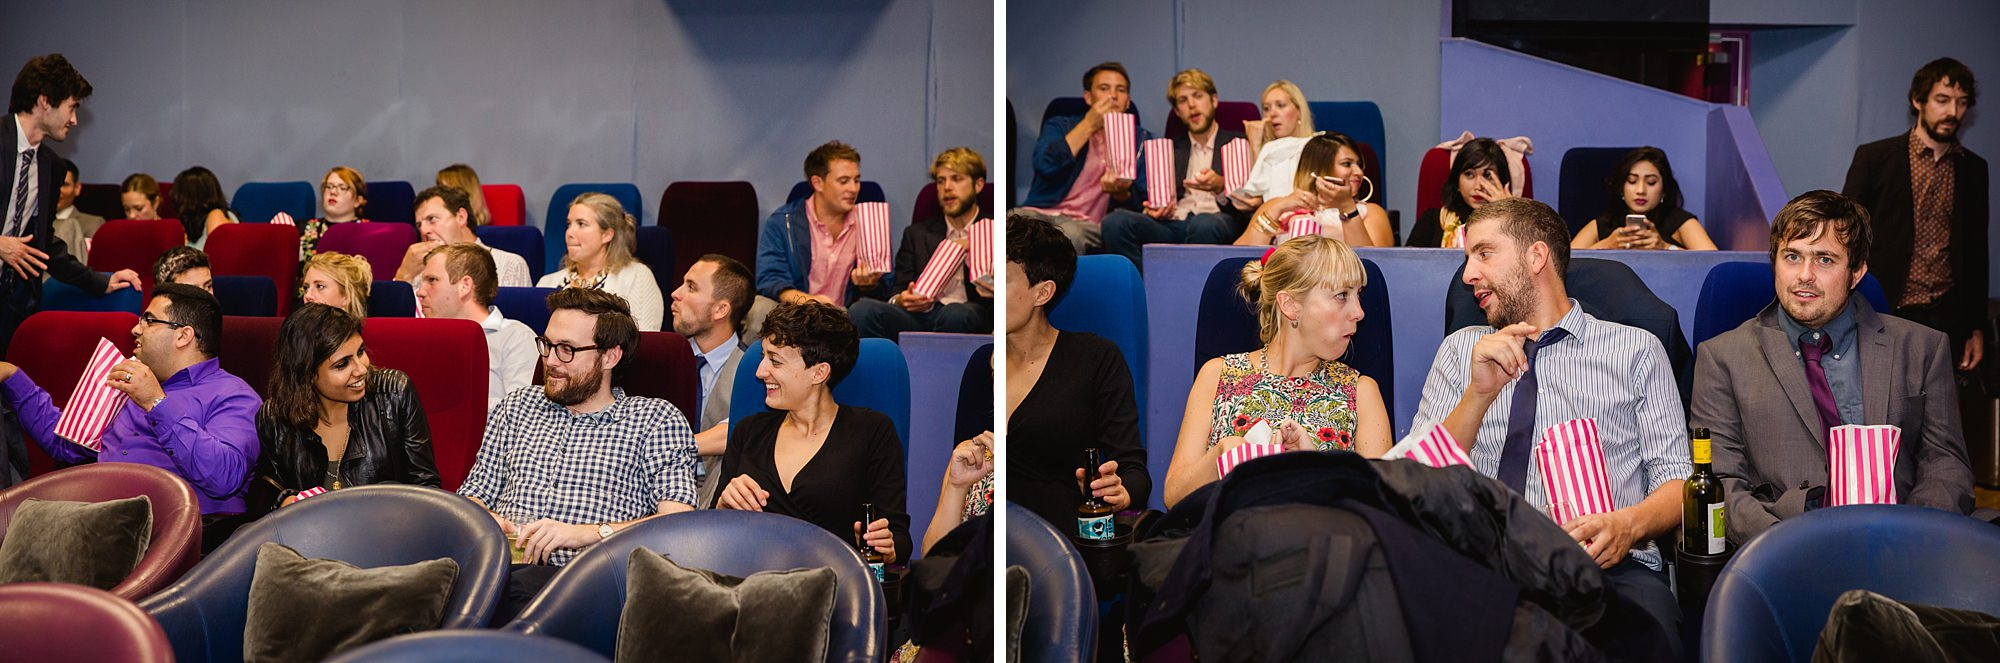 Paradise by way of Kensal Green wedding guests in cinema